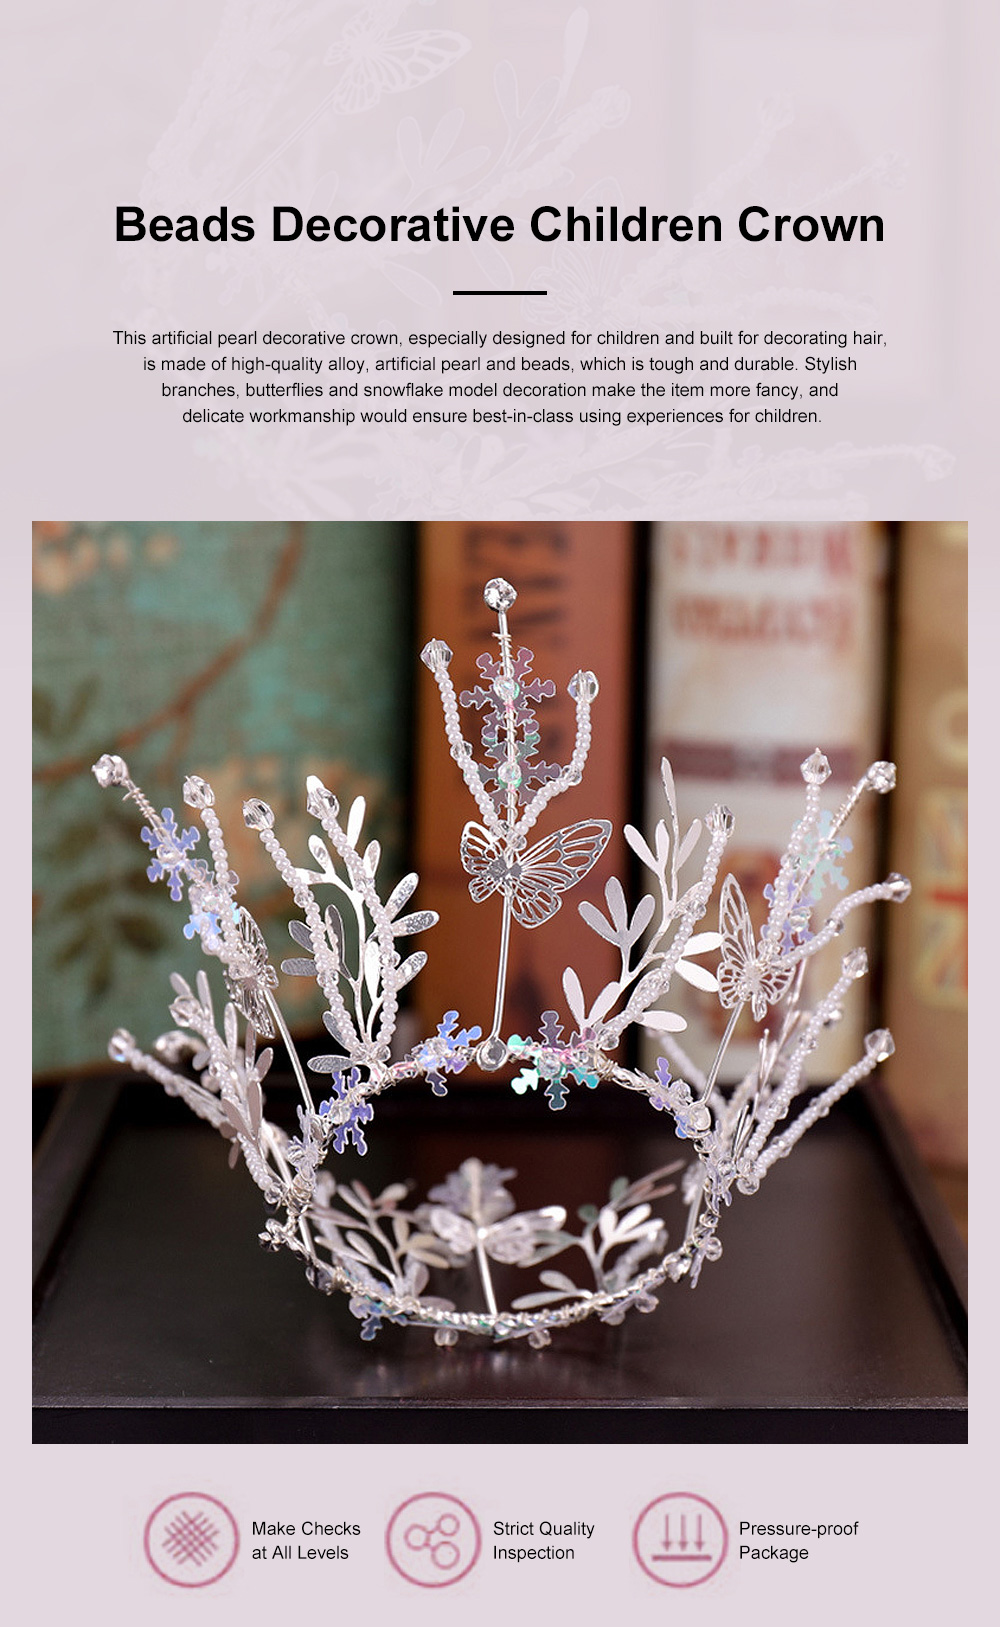 Child Elegant Fancy Artificial Pearl Beads Decorative Crown, Branches Butterflies Snowflake Model Hair Band for Girls 1